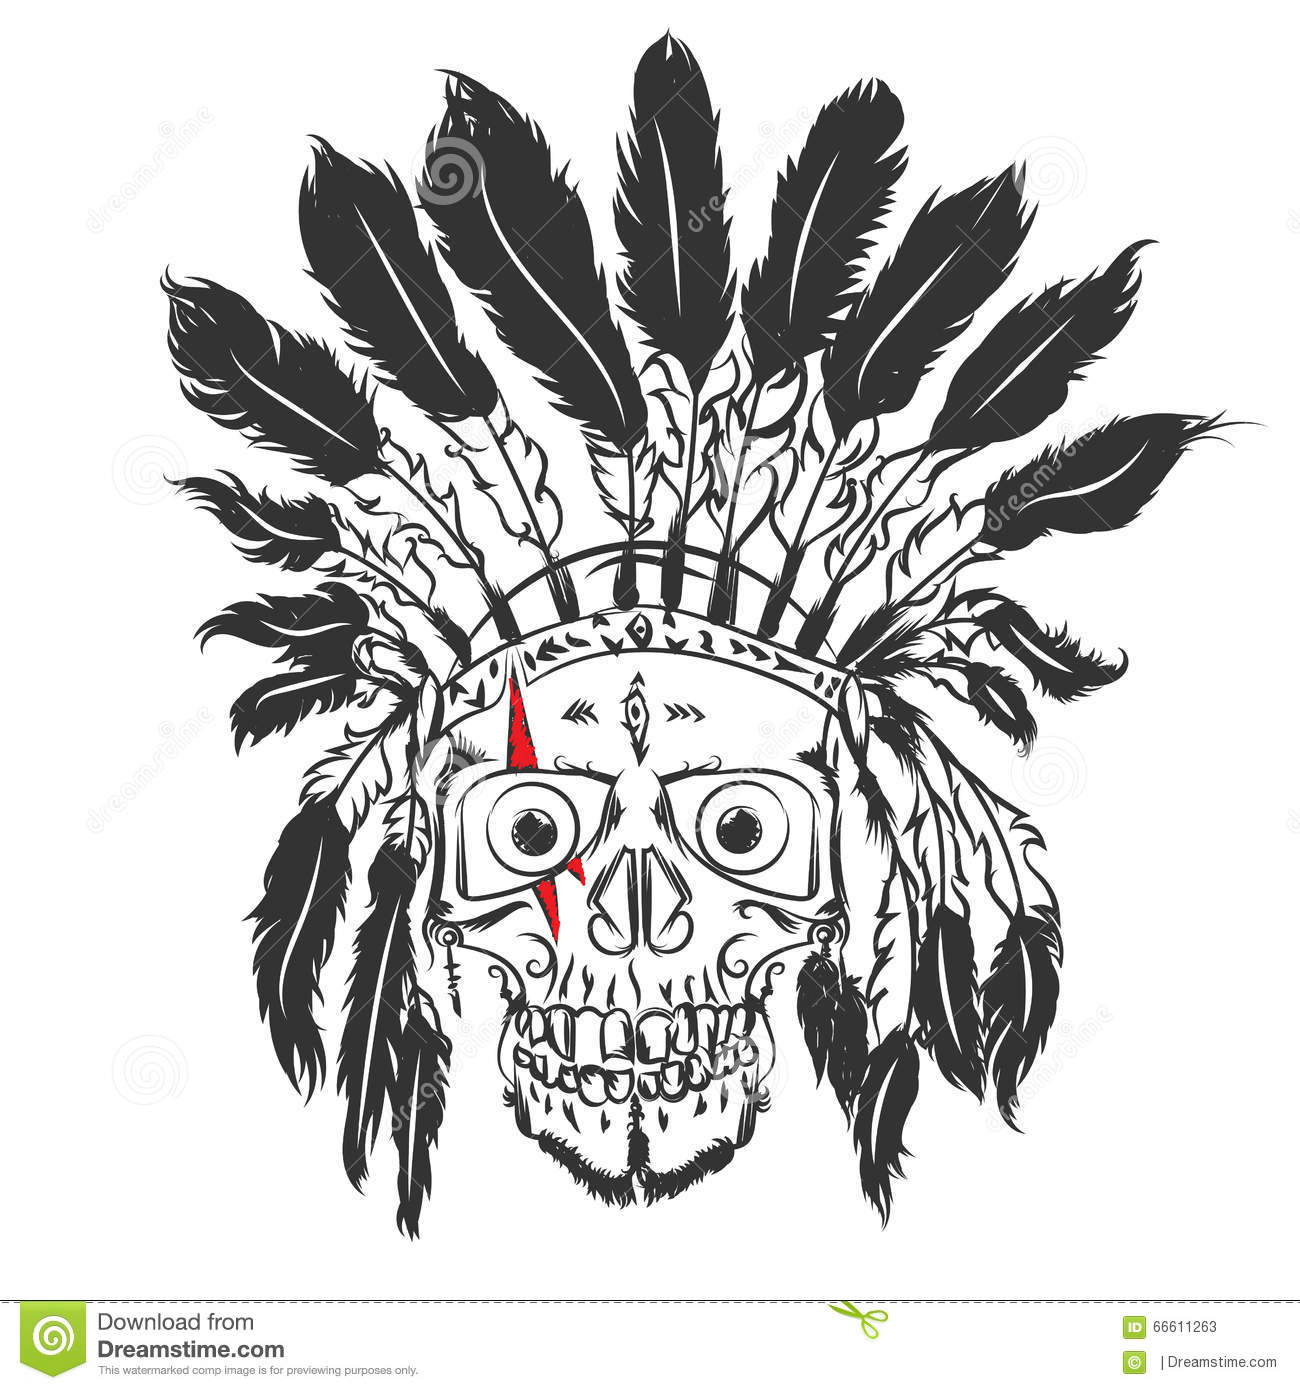 Handmade Drawning Skull With Indian Feather Hat Grunge